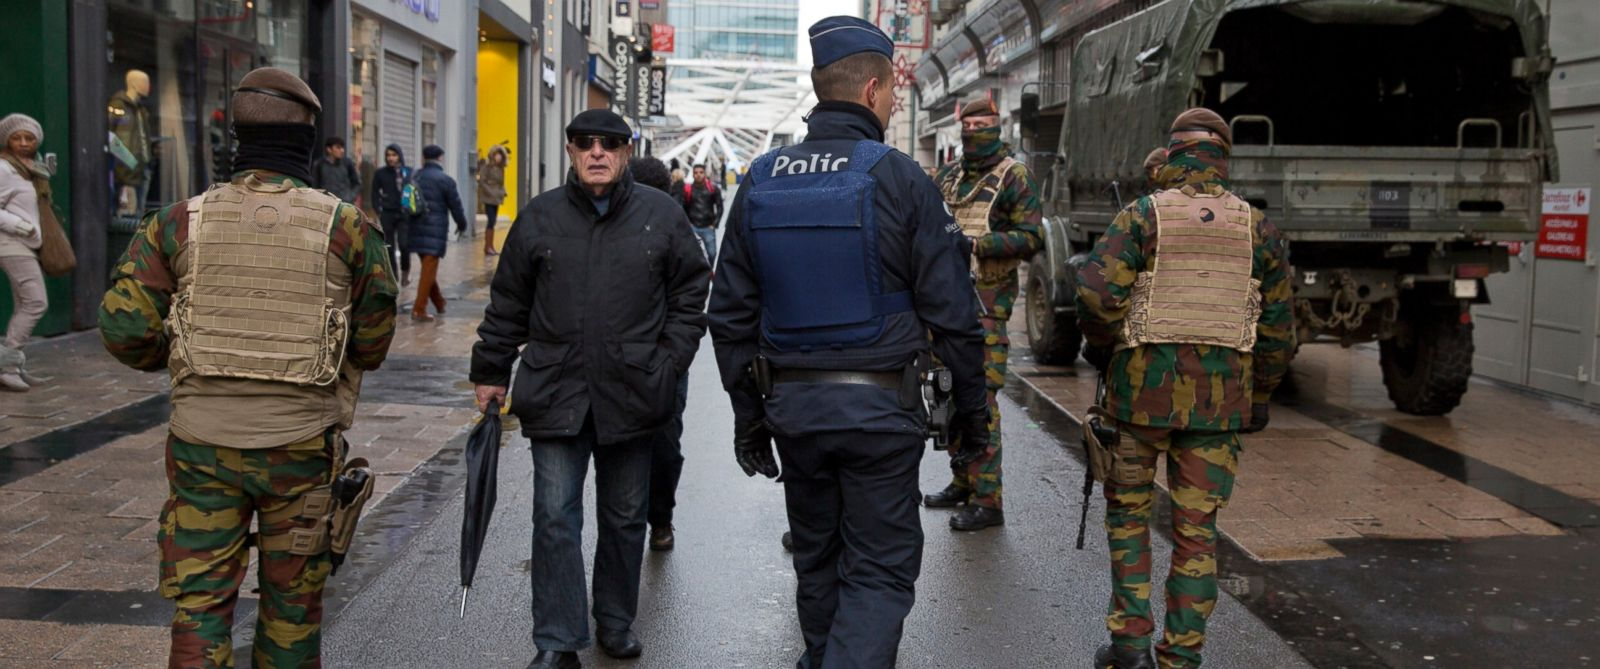 PHOTO: Belgian Army soldiers and police patrol an otherwise busy shopping street in Brussels on Saturday, Nov. 21, 2015.